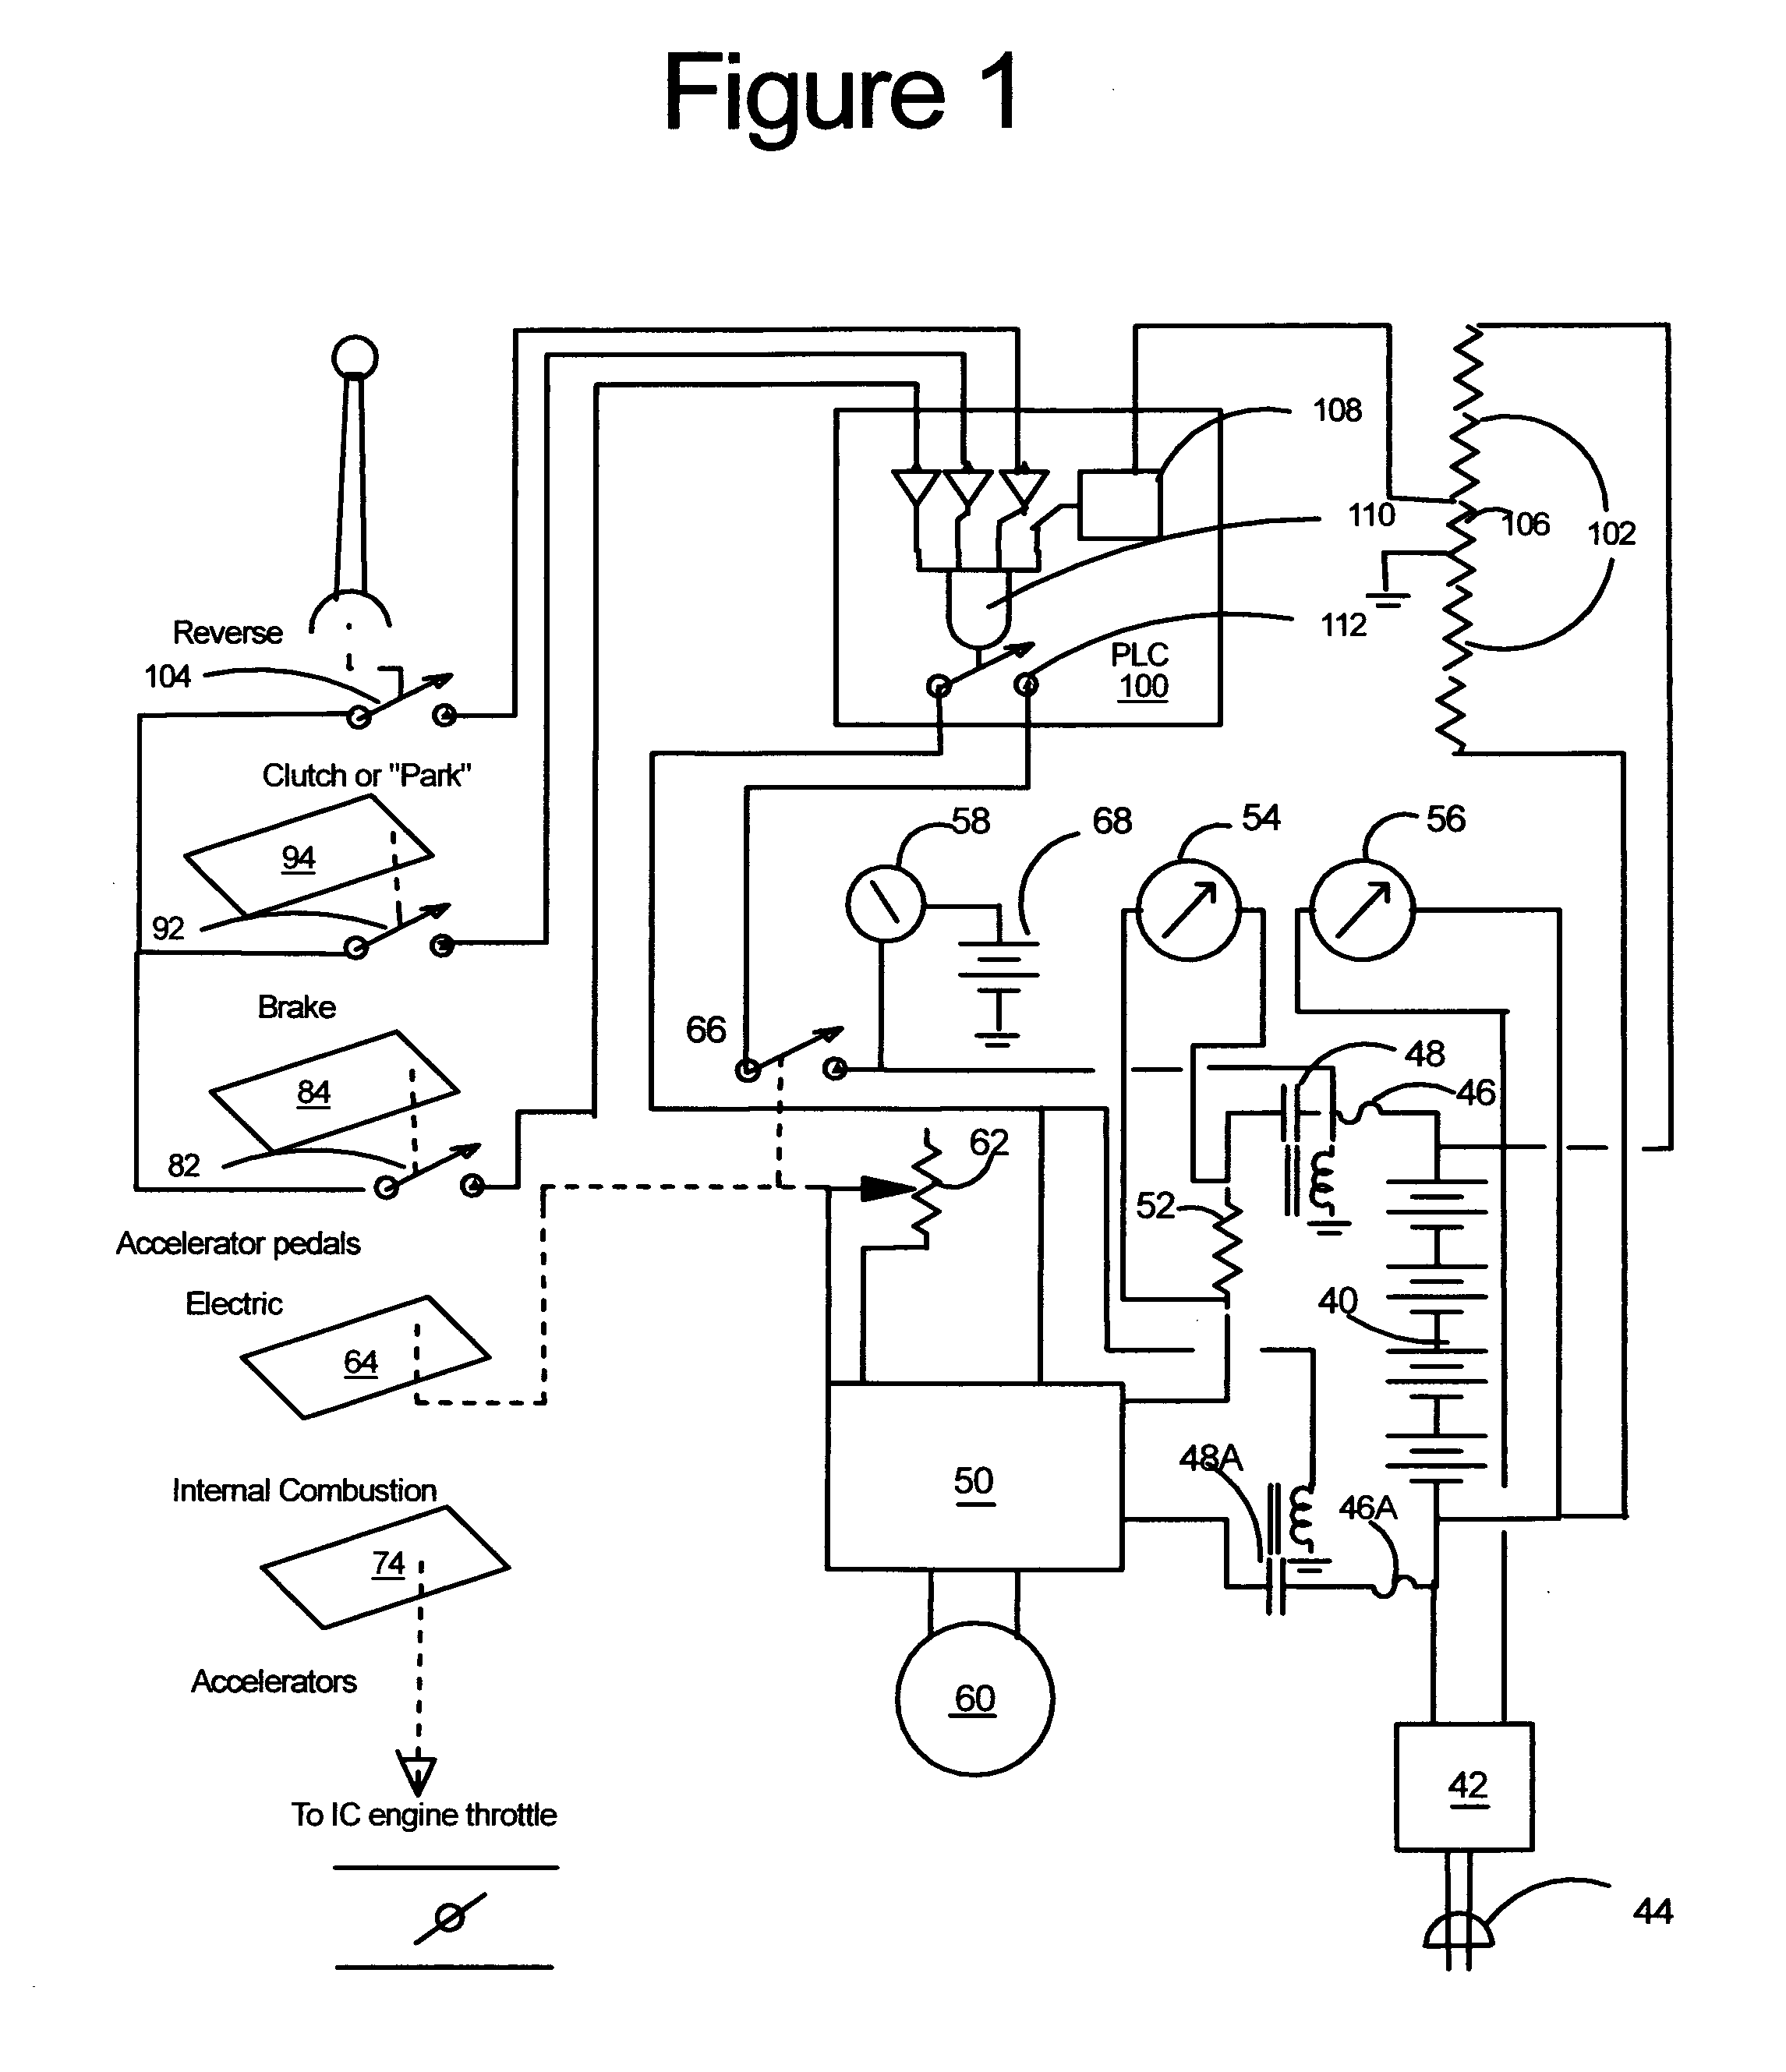 patent us control system for electric hybrid vehicle patent drawing